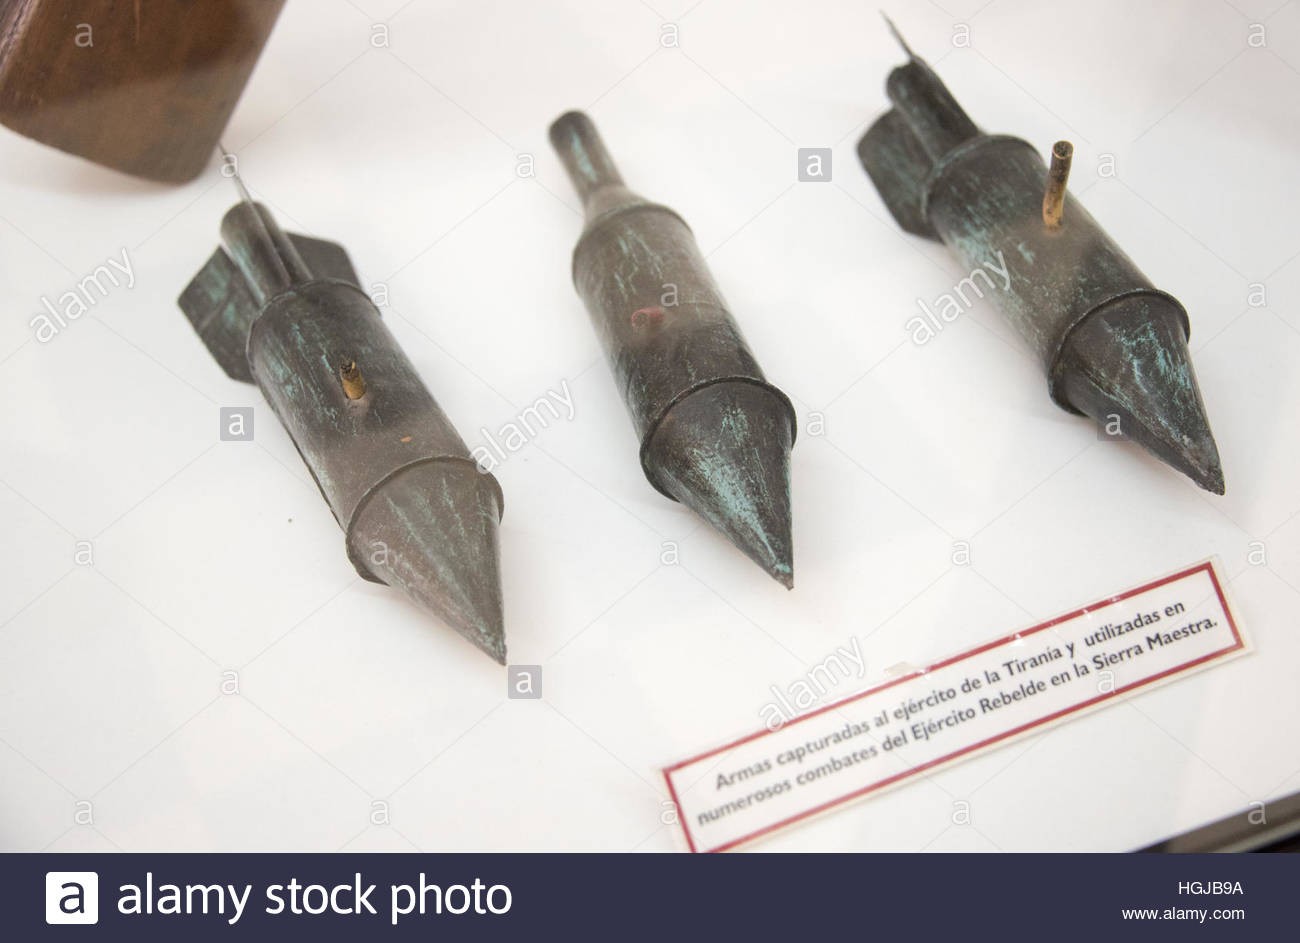 Cuban history: Exhibition of historical war weapons which were used by the Rebel Army in the 'Sierra Maestra' - Stock Image